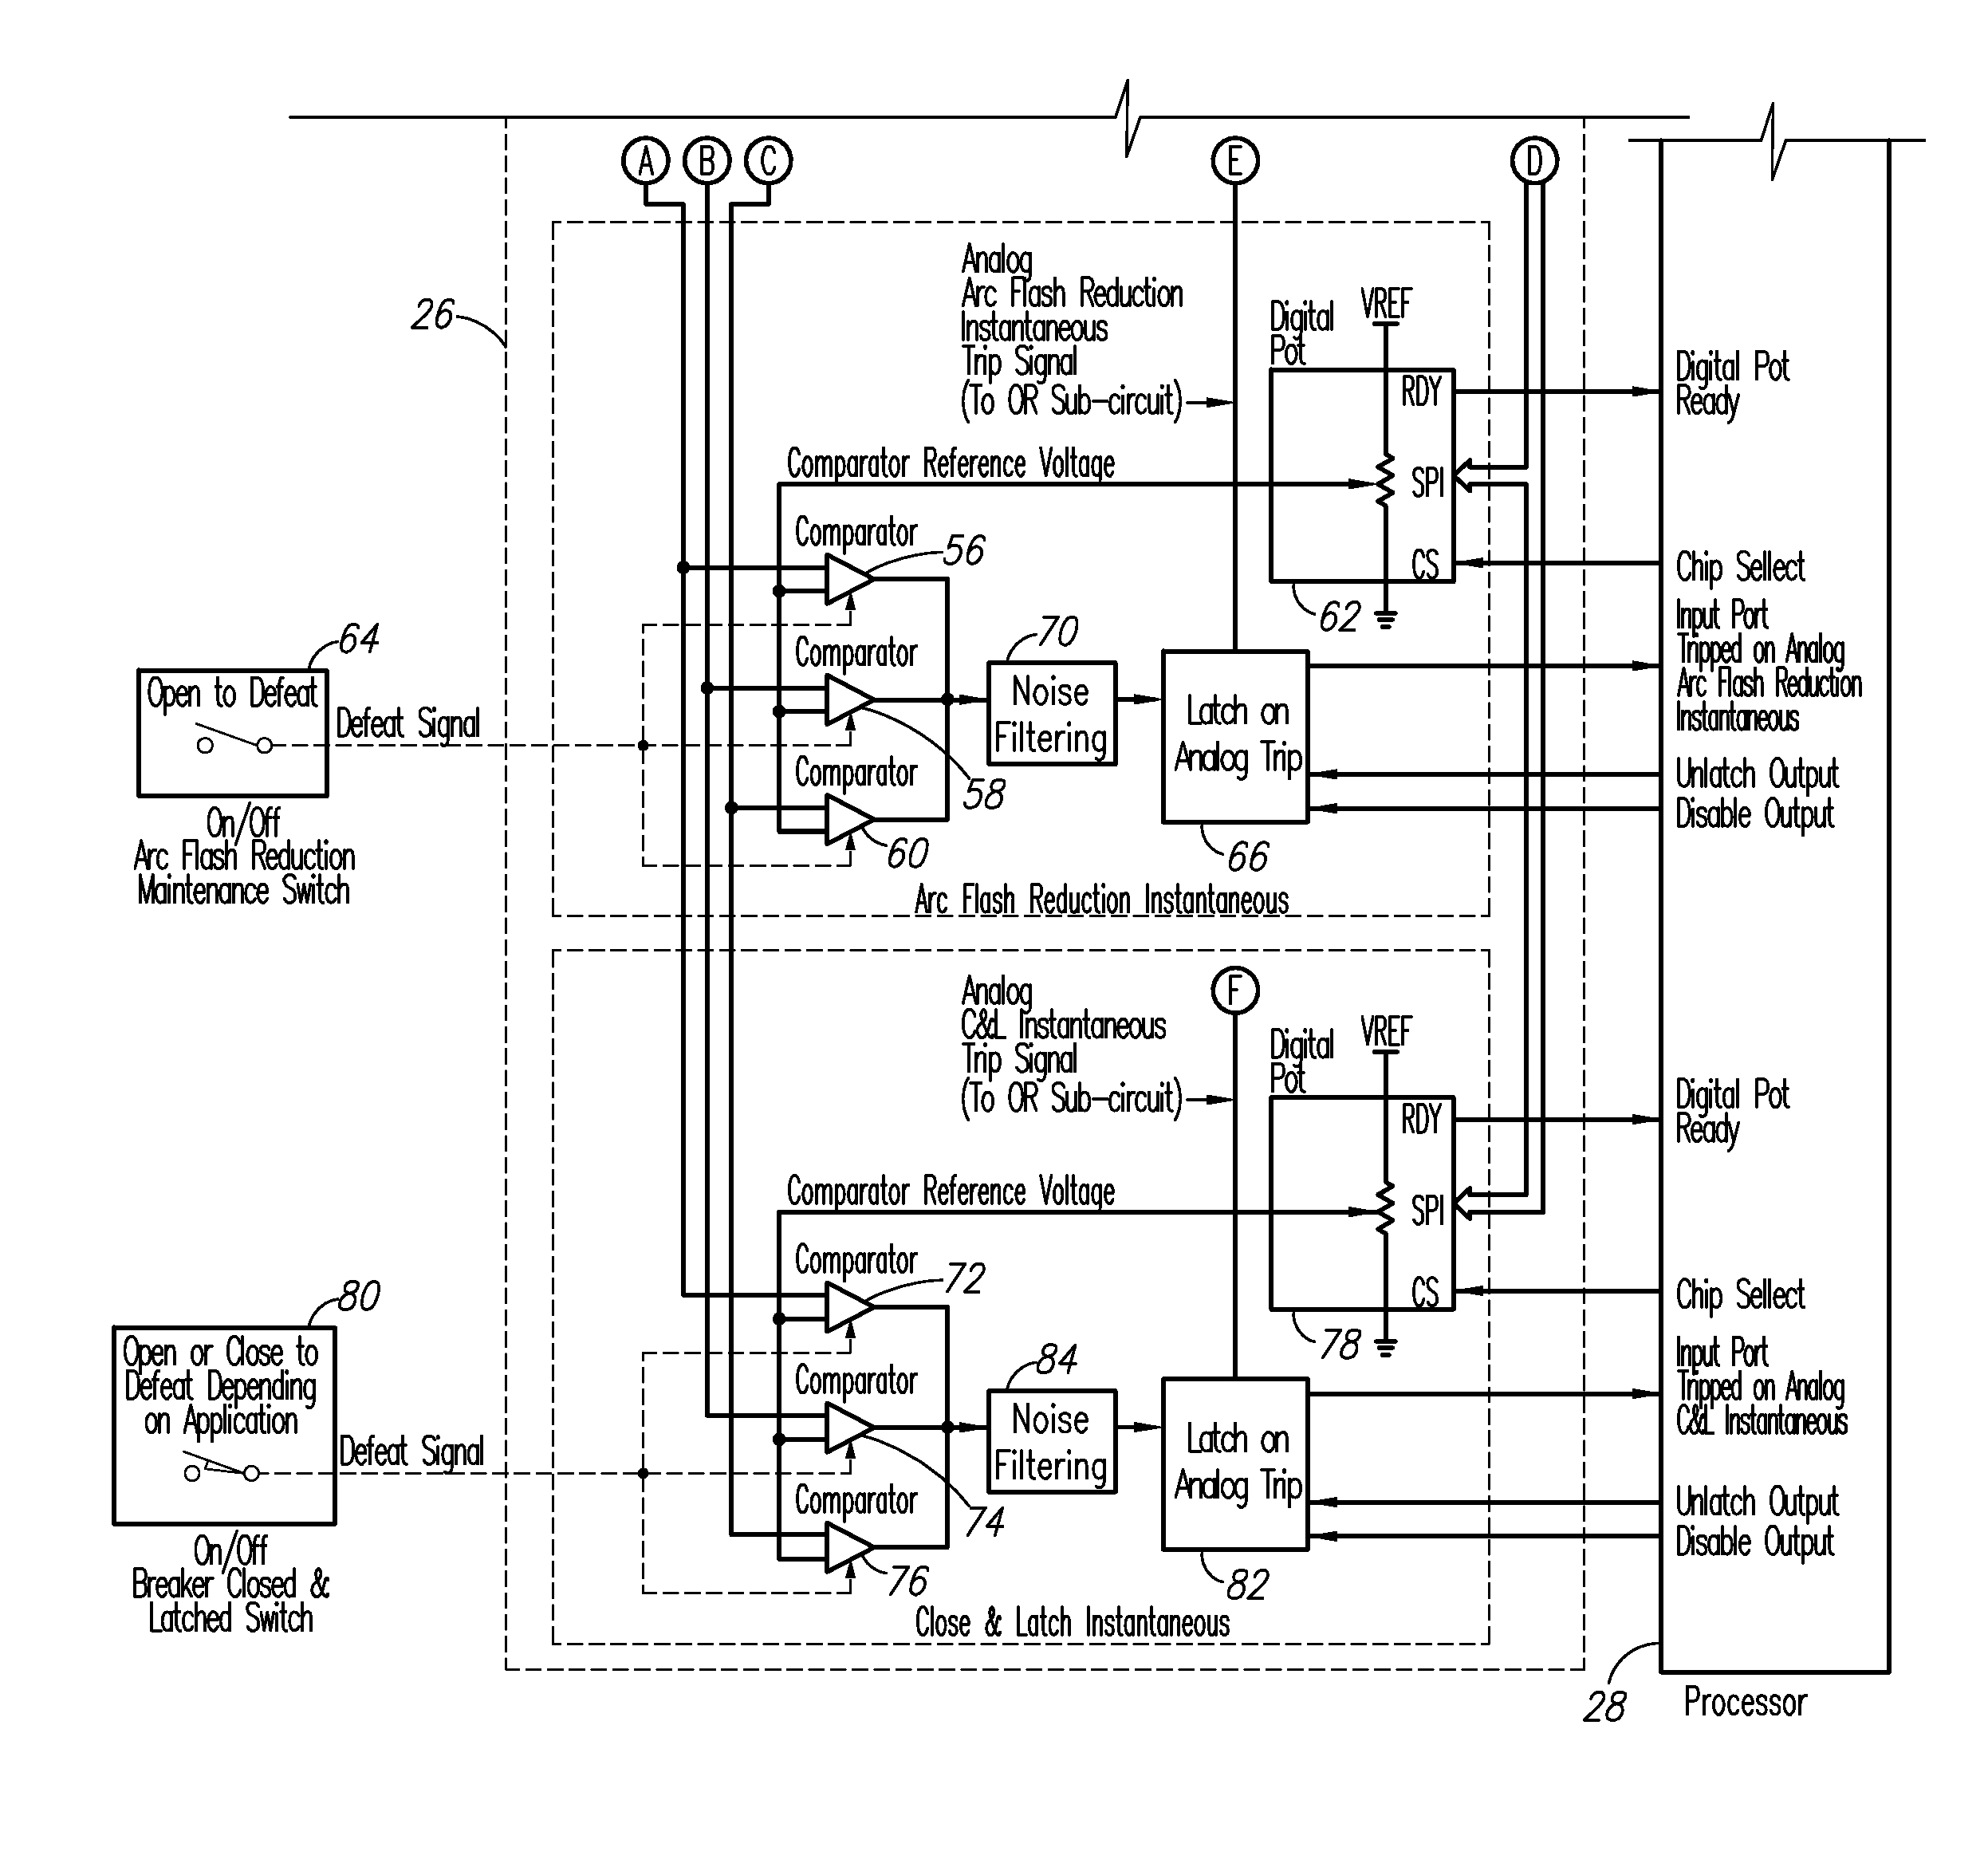 Ab Circuit Breaker Schematic Wiring Diagrams Reflectivesensor Sensorcircuit Diagram Seekiccom Patent Us8837103 Trip Unit With Digital Rh Google Com Na Symbol Drawing